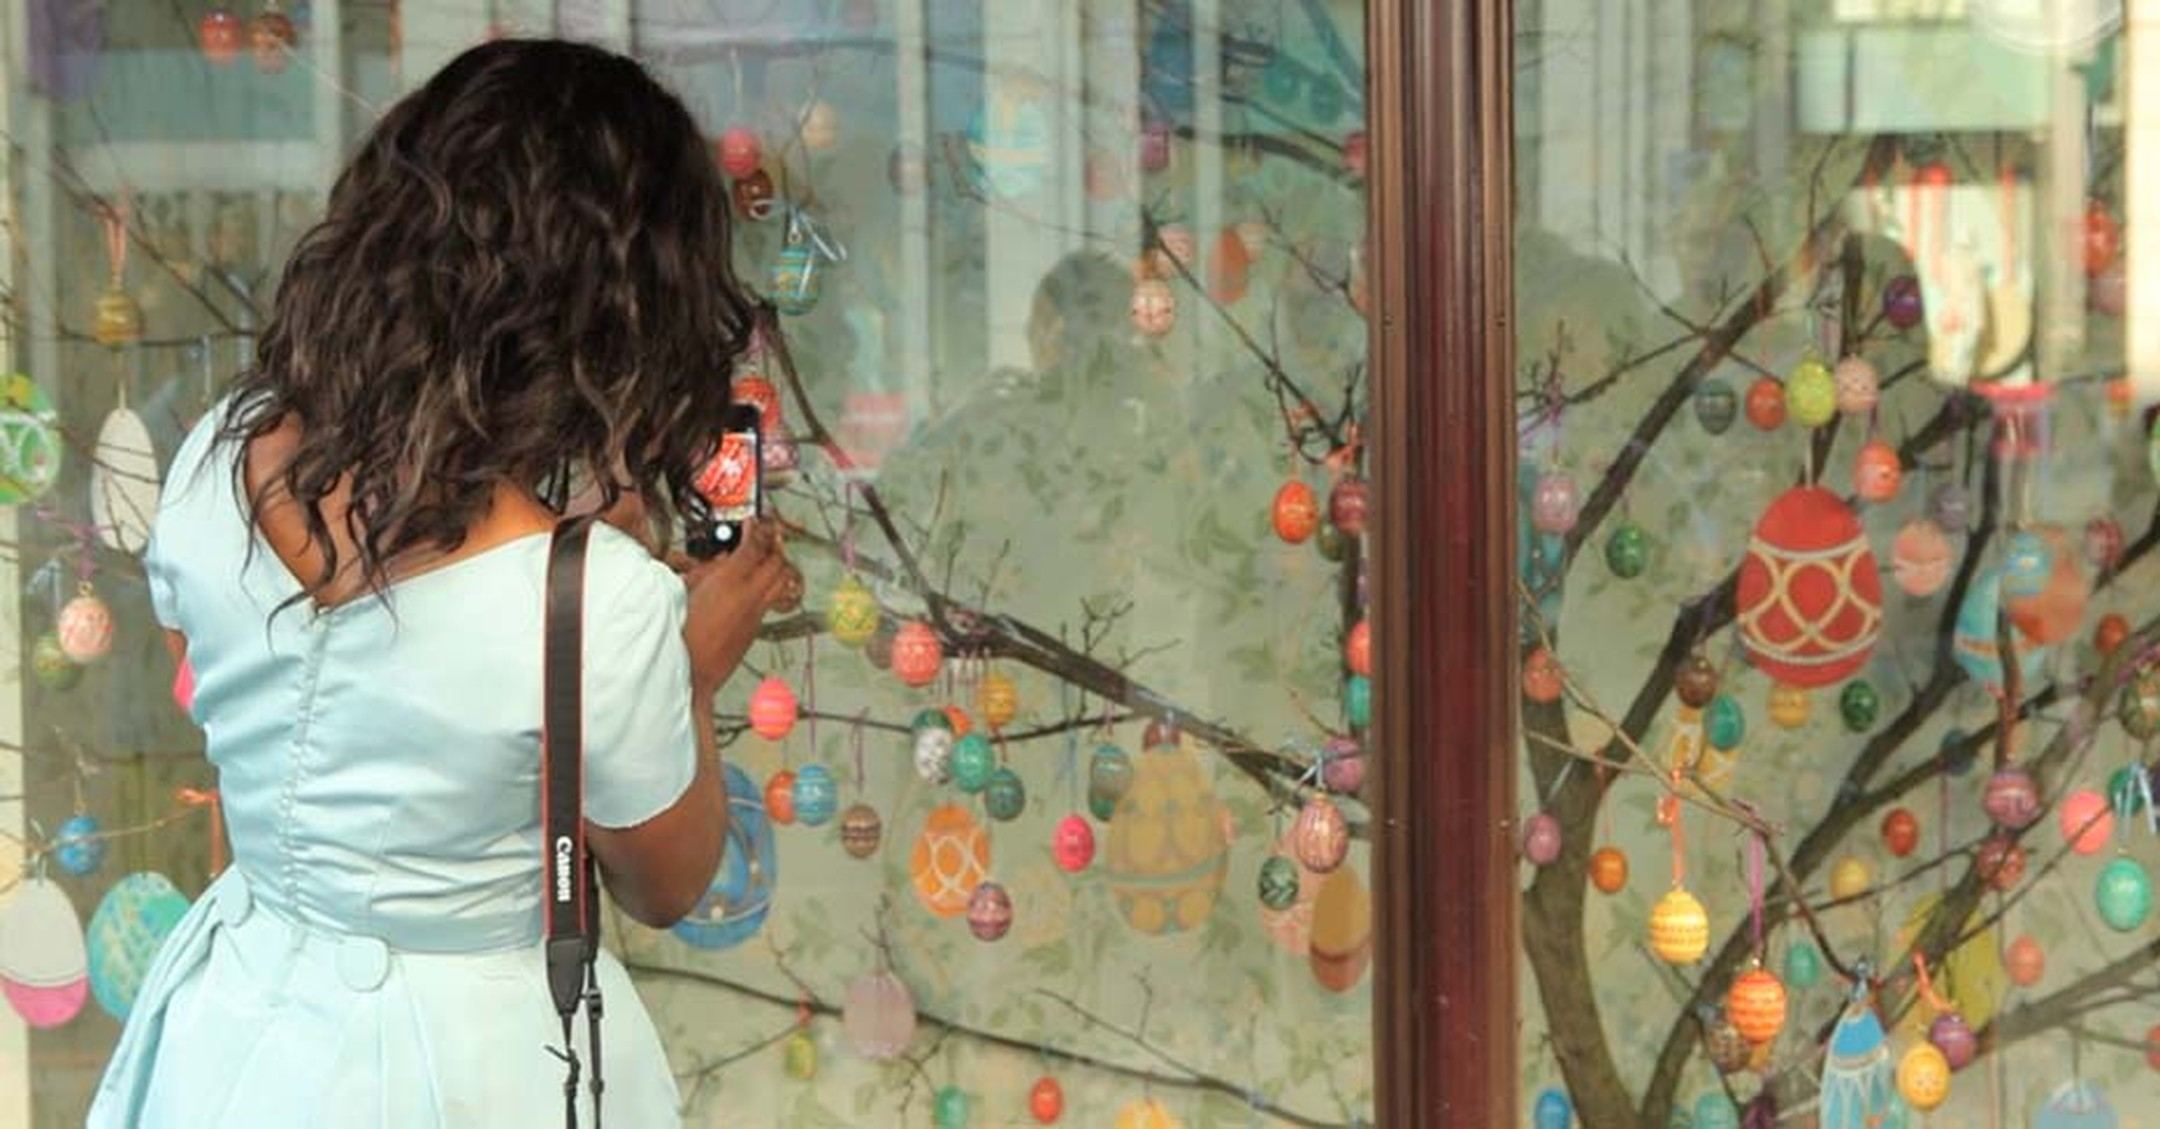 A bypassed photographing one of the 23 Harrods windows that Fabergé has taken over for its Easter event.